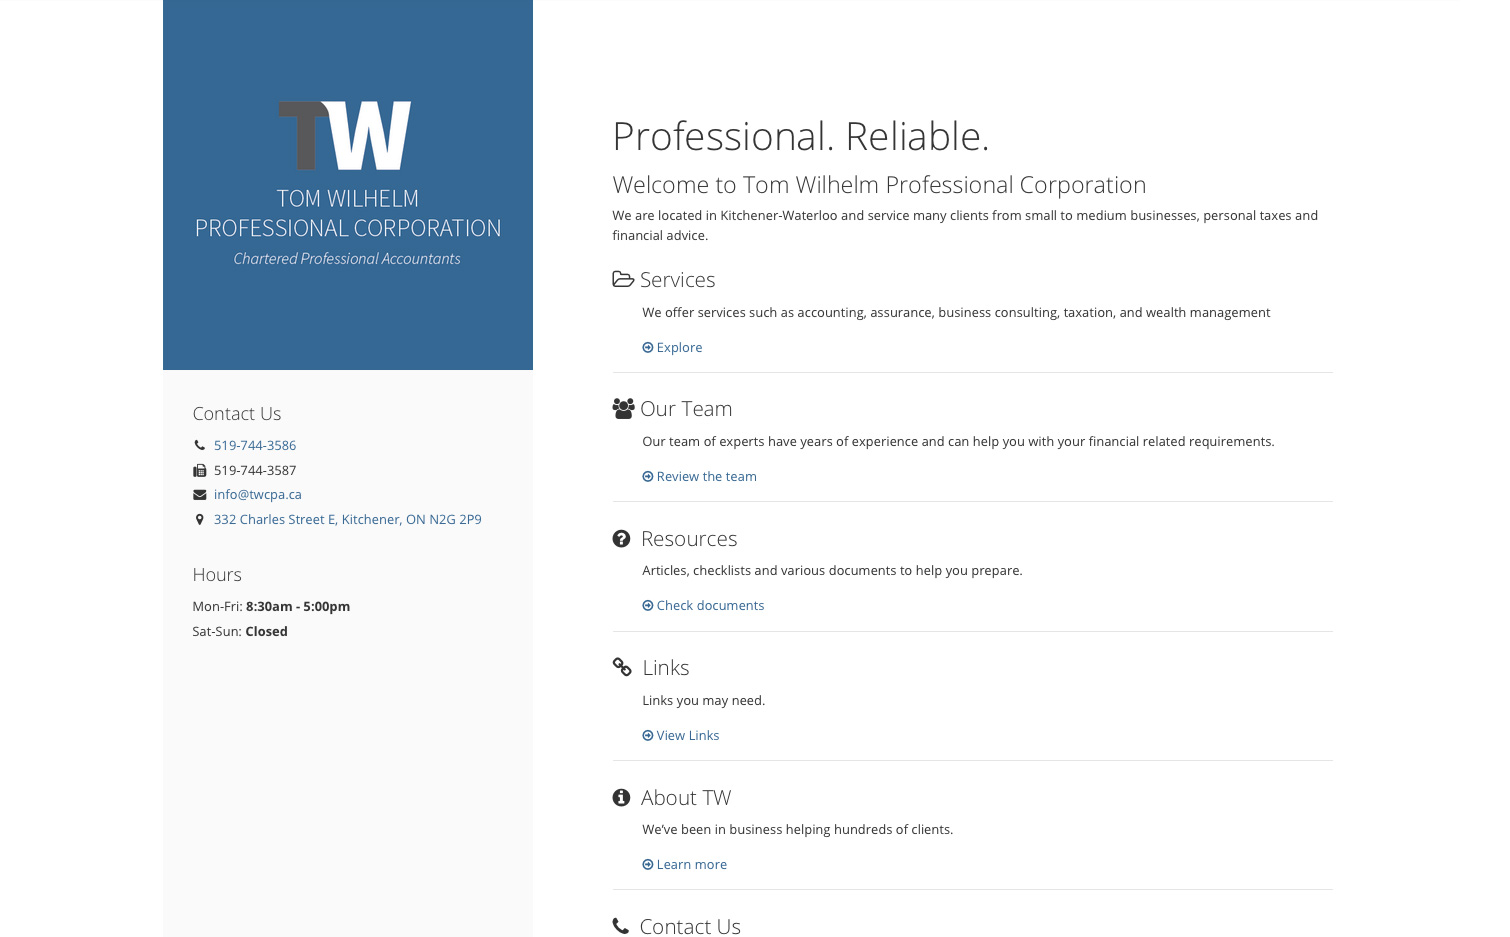 tom-wilhelm-professional-chartered-accountants